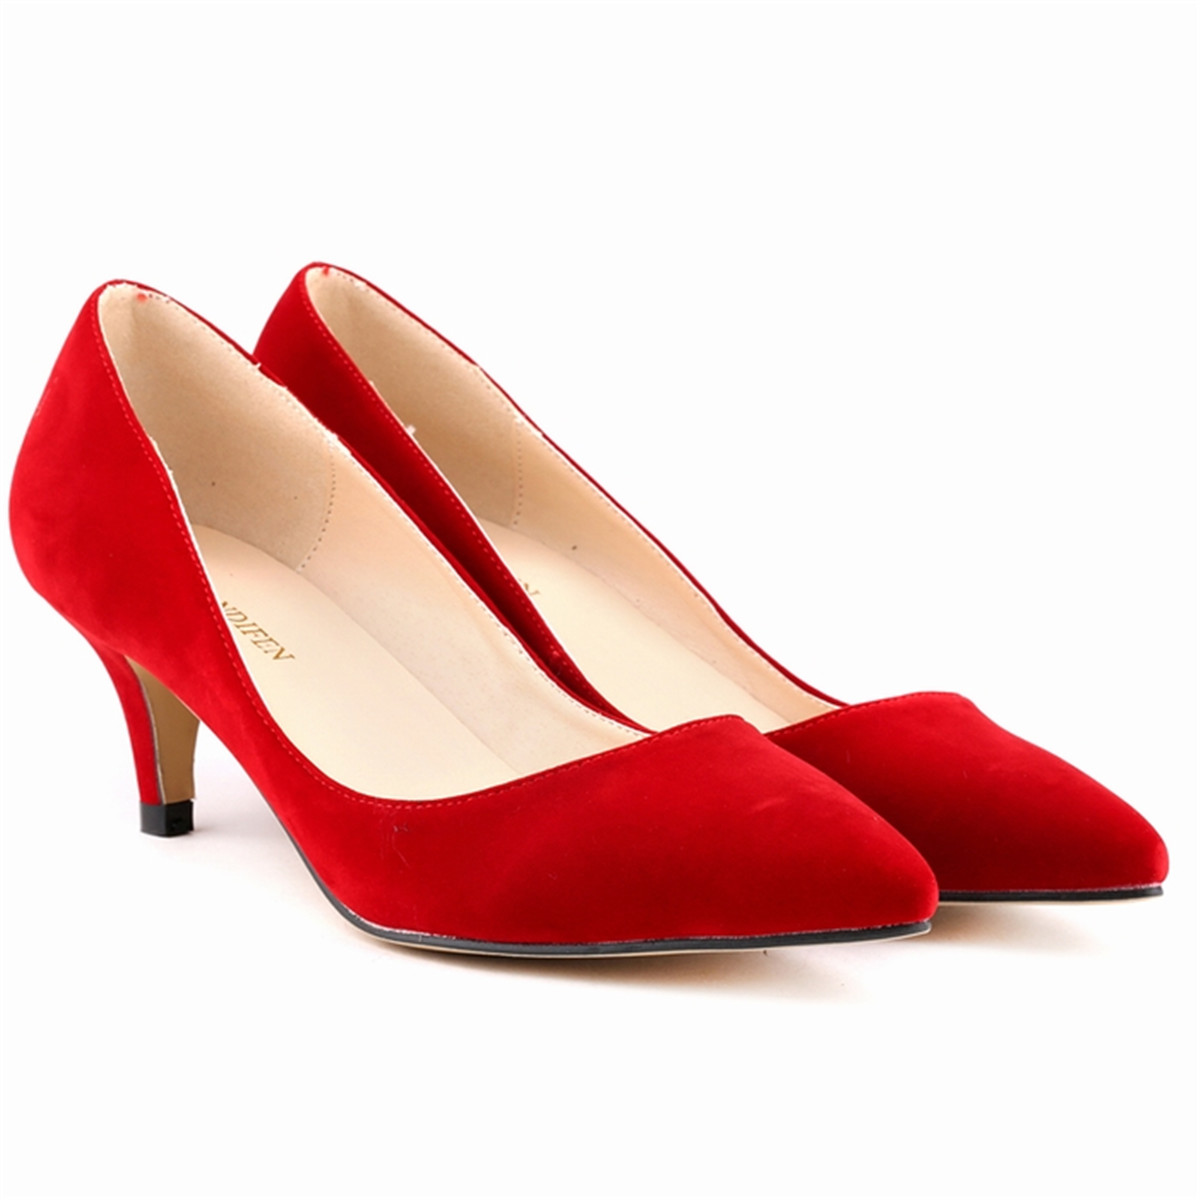 Low Heel Red Pumps IDTNphxZ